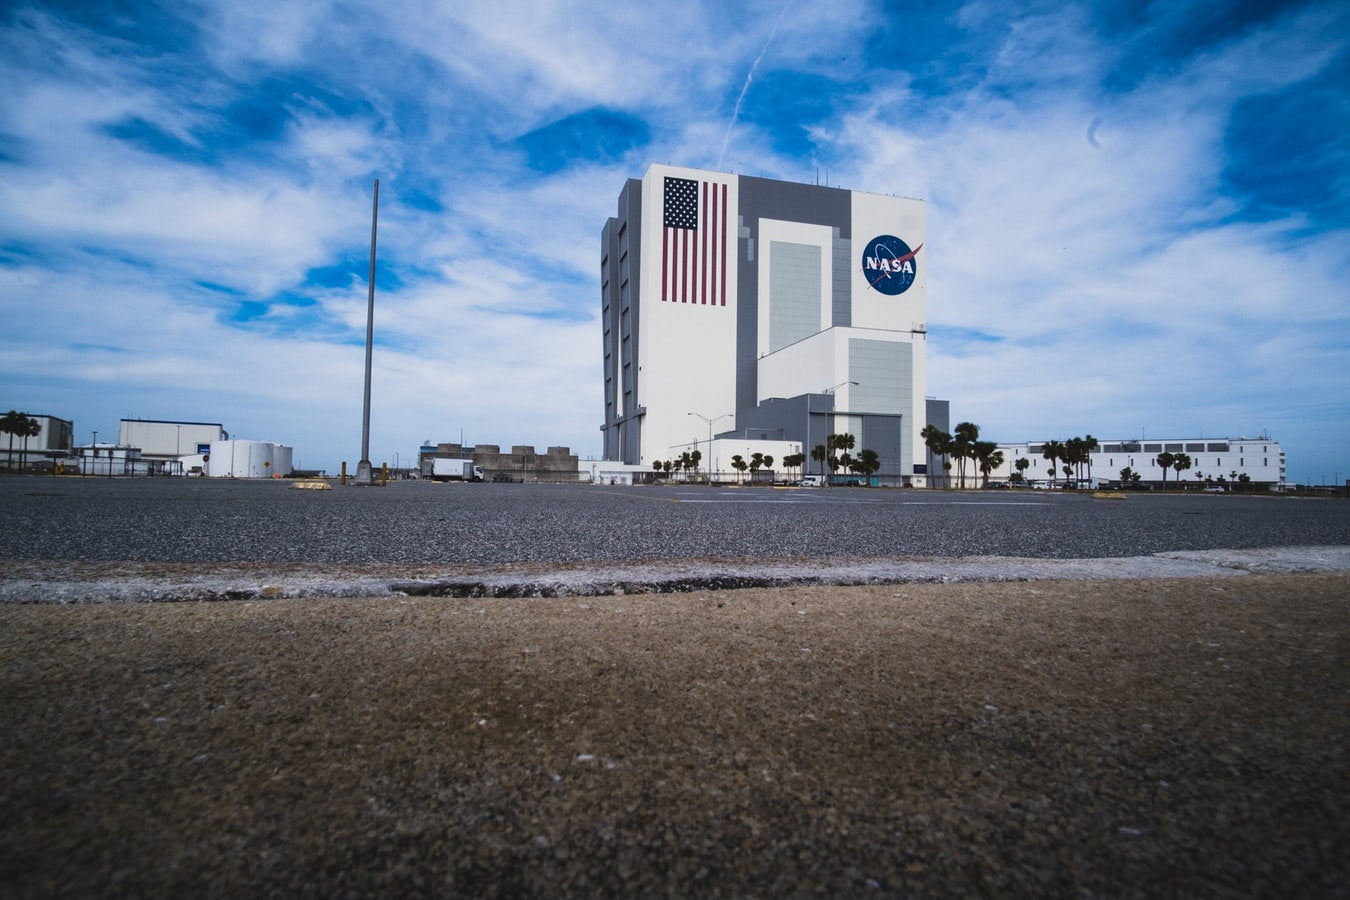 Kennedy Space Center in Florida